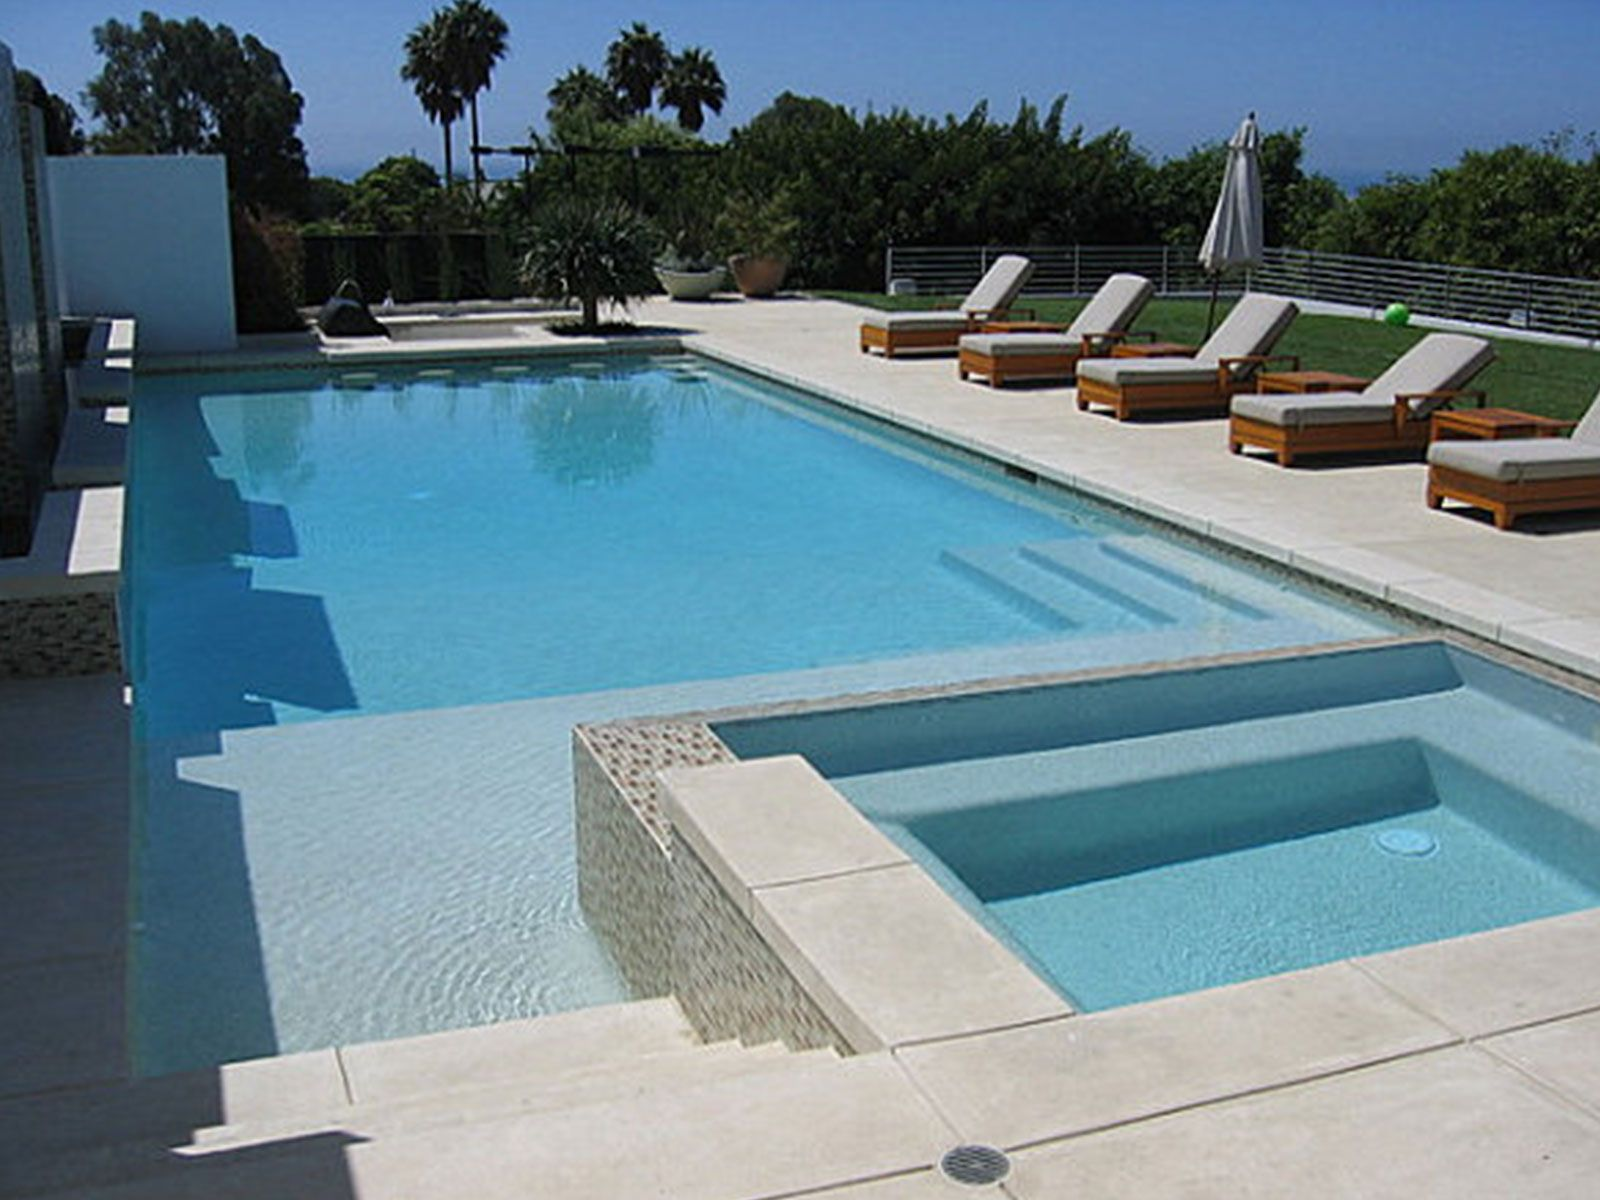 swimming pools designs | pool design and pool ideas